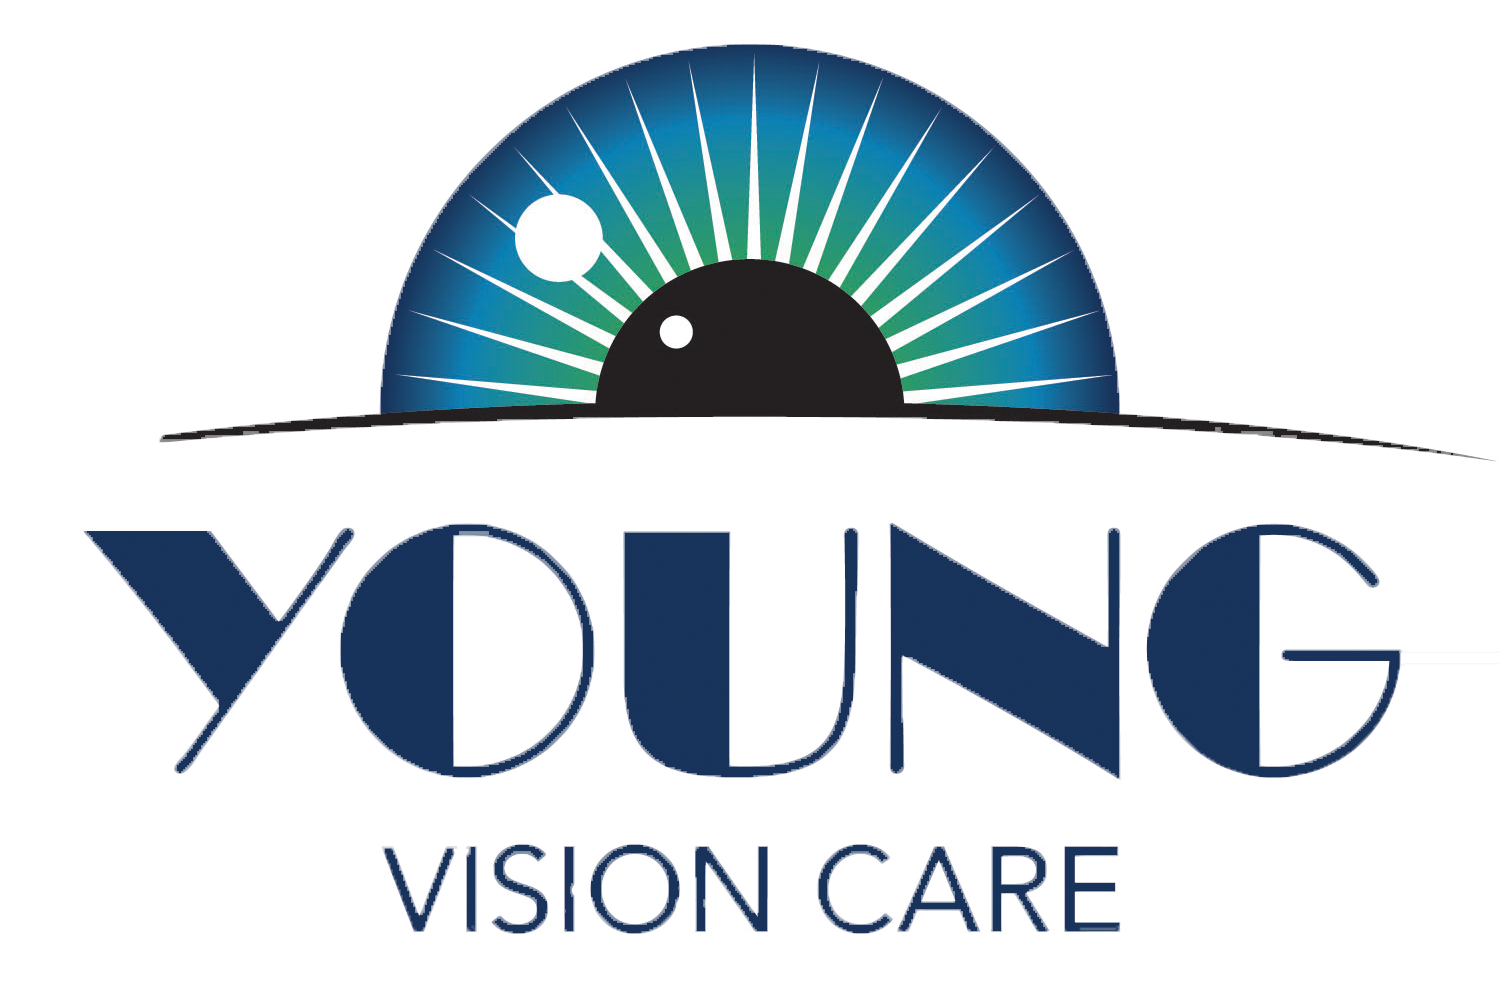 Young Vision Care